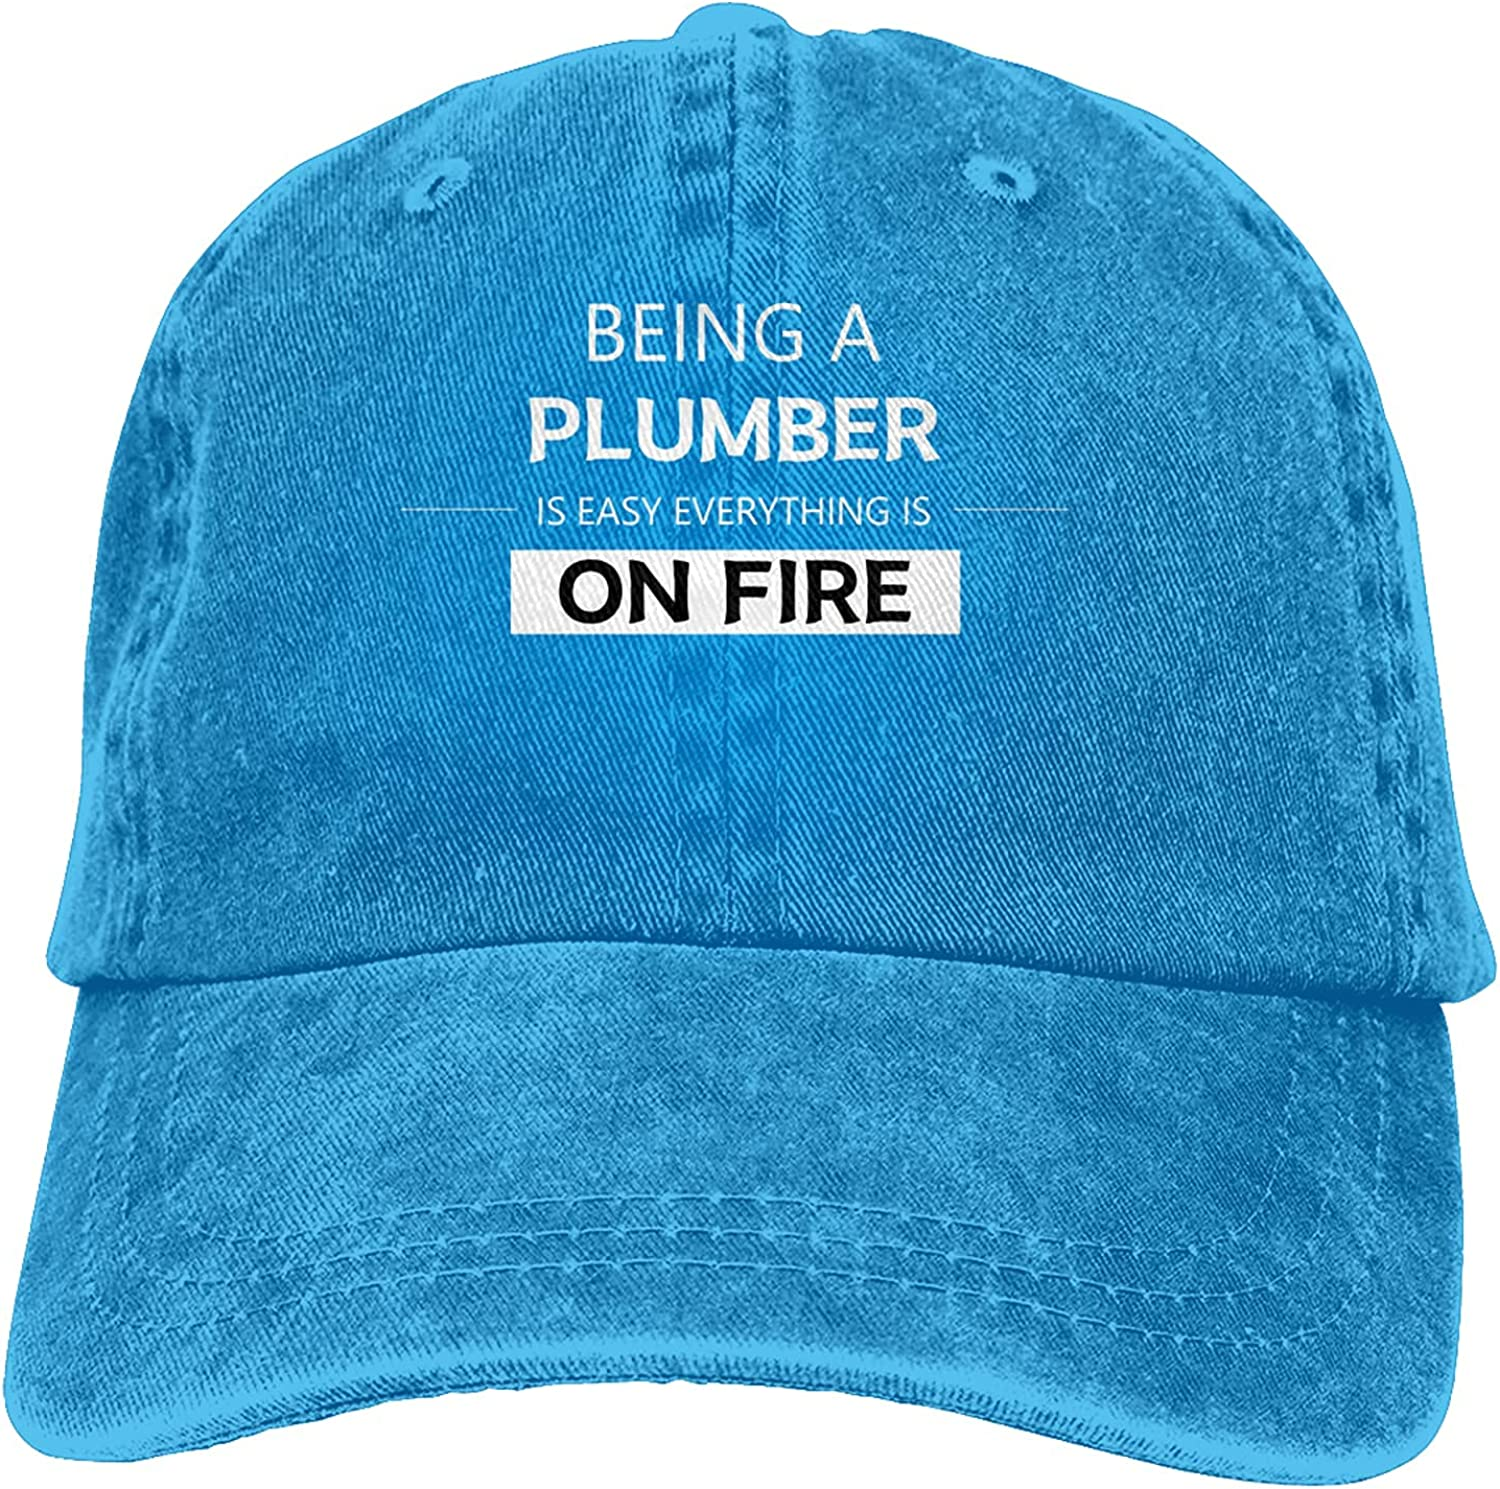 Being A Plumber is Easy Everything is On Fire Baseball Cap Trucker Hat Retro Cowboy Dad Hat Classic Adjustable Sports Cap for Men&Women Blue